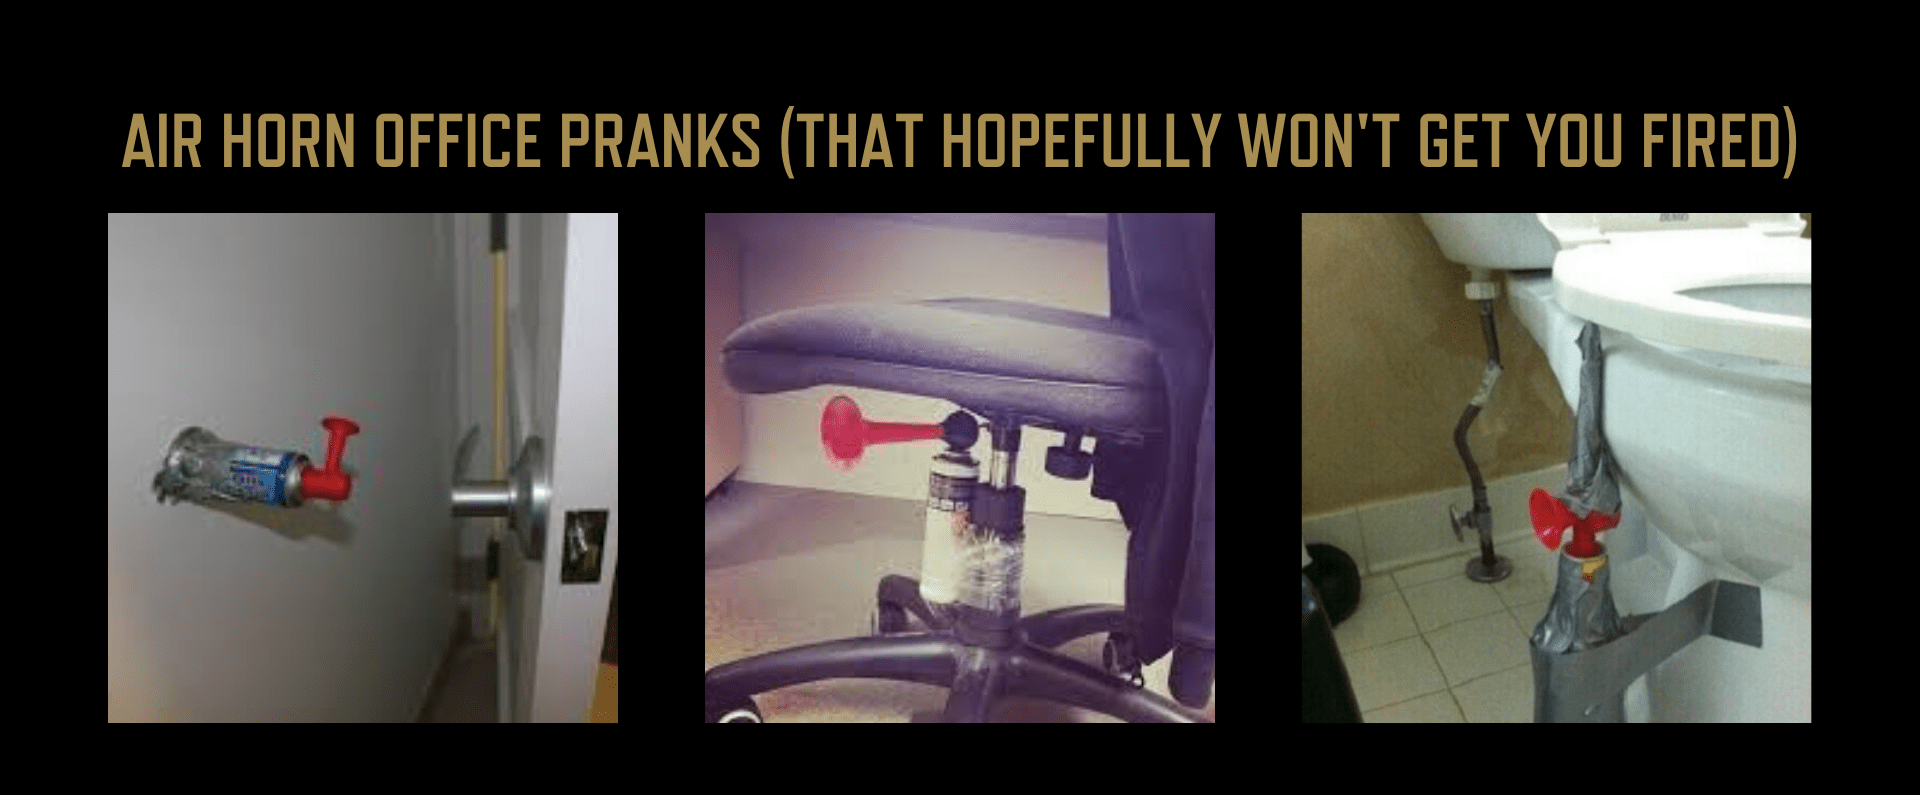 Air horn pranks that hopefully don't get you fired